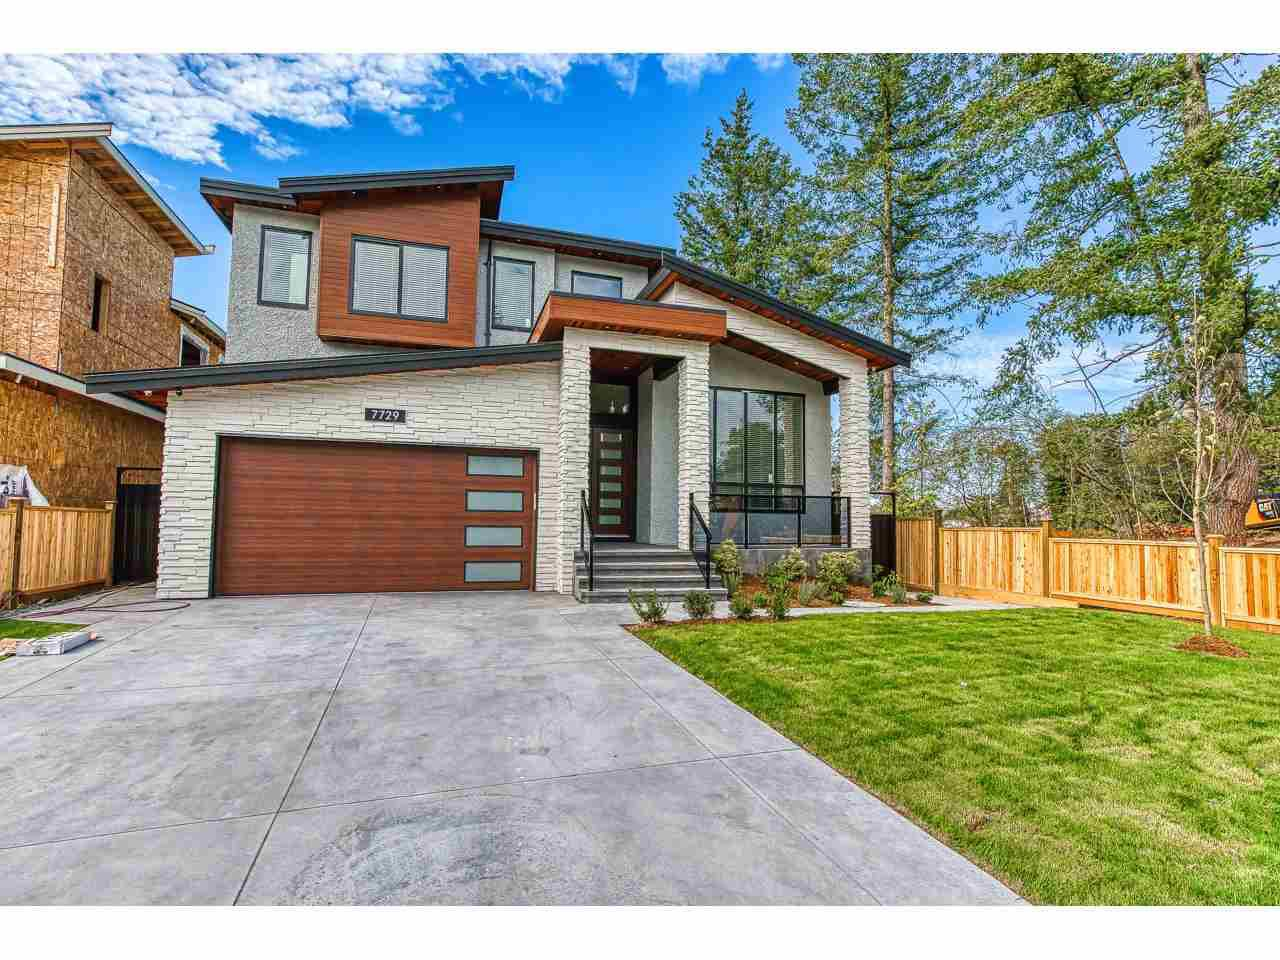 "Main Photo: 7729 156 Street in Surrey: Fleetwood Tynehead House for sale in ""Fleetwood"" : MLS®# R2407801"